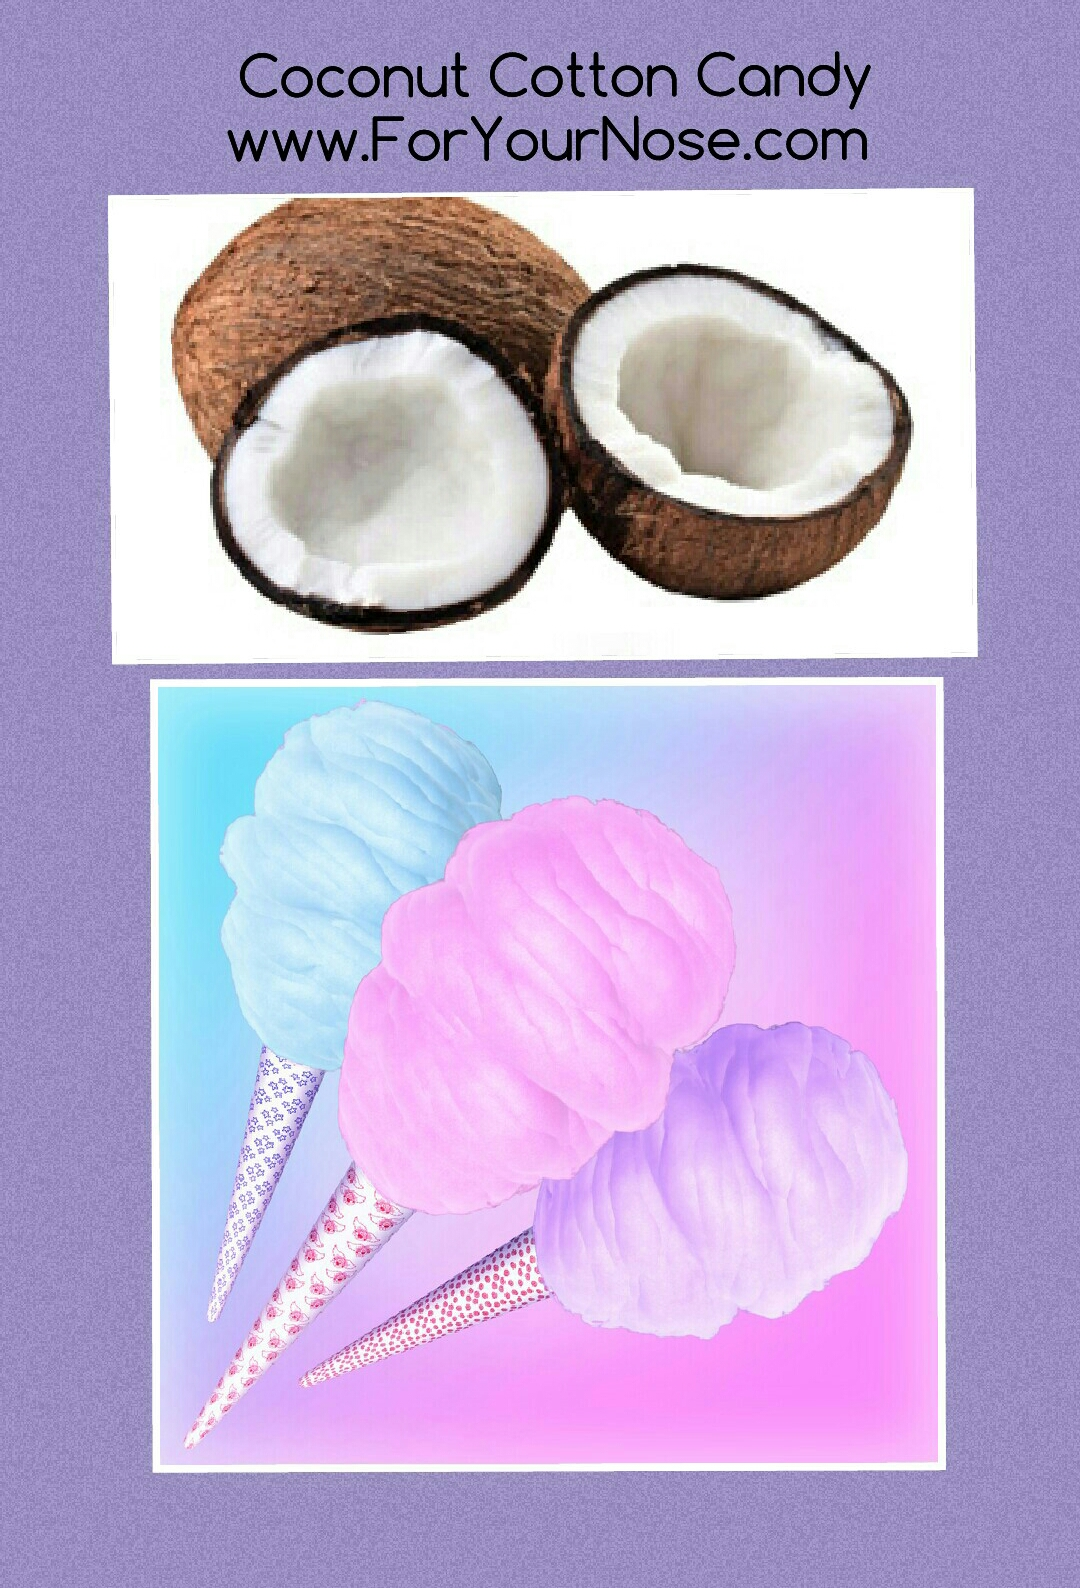 coconut cotton candy fragrance